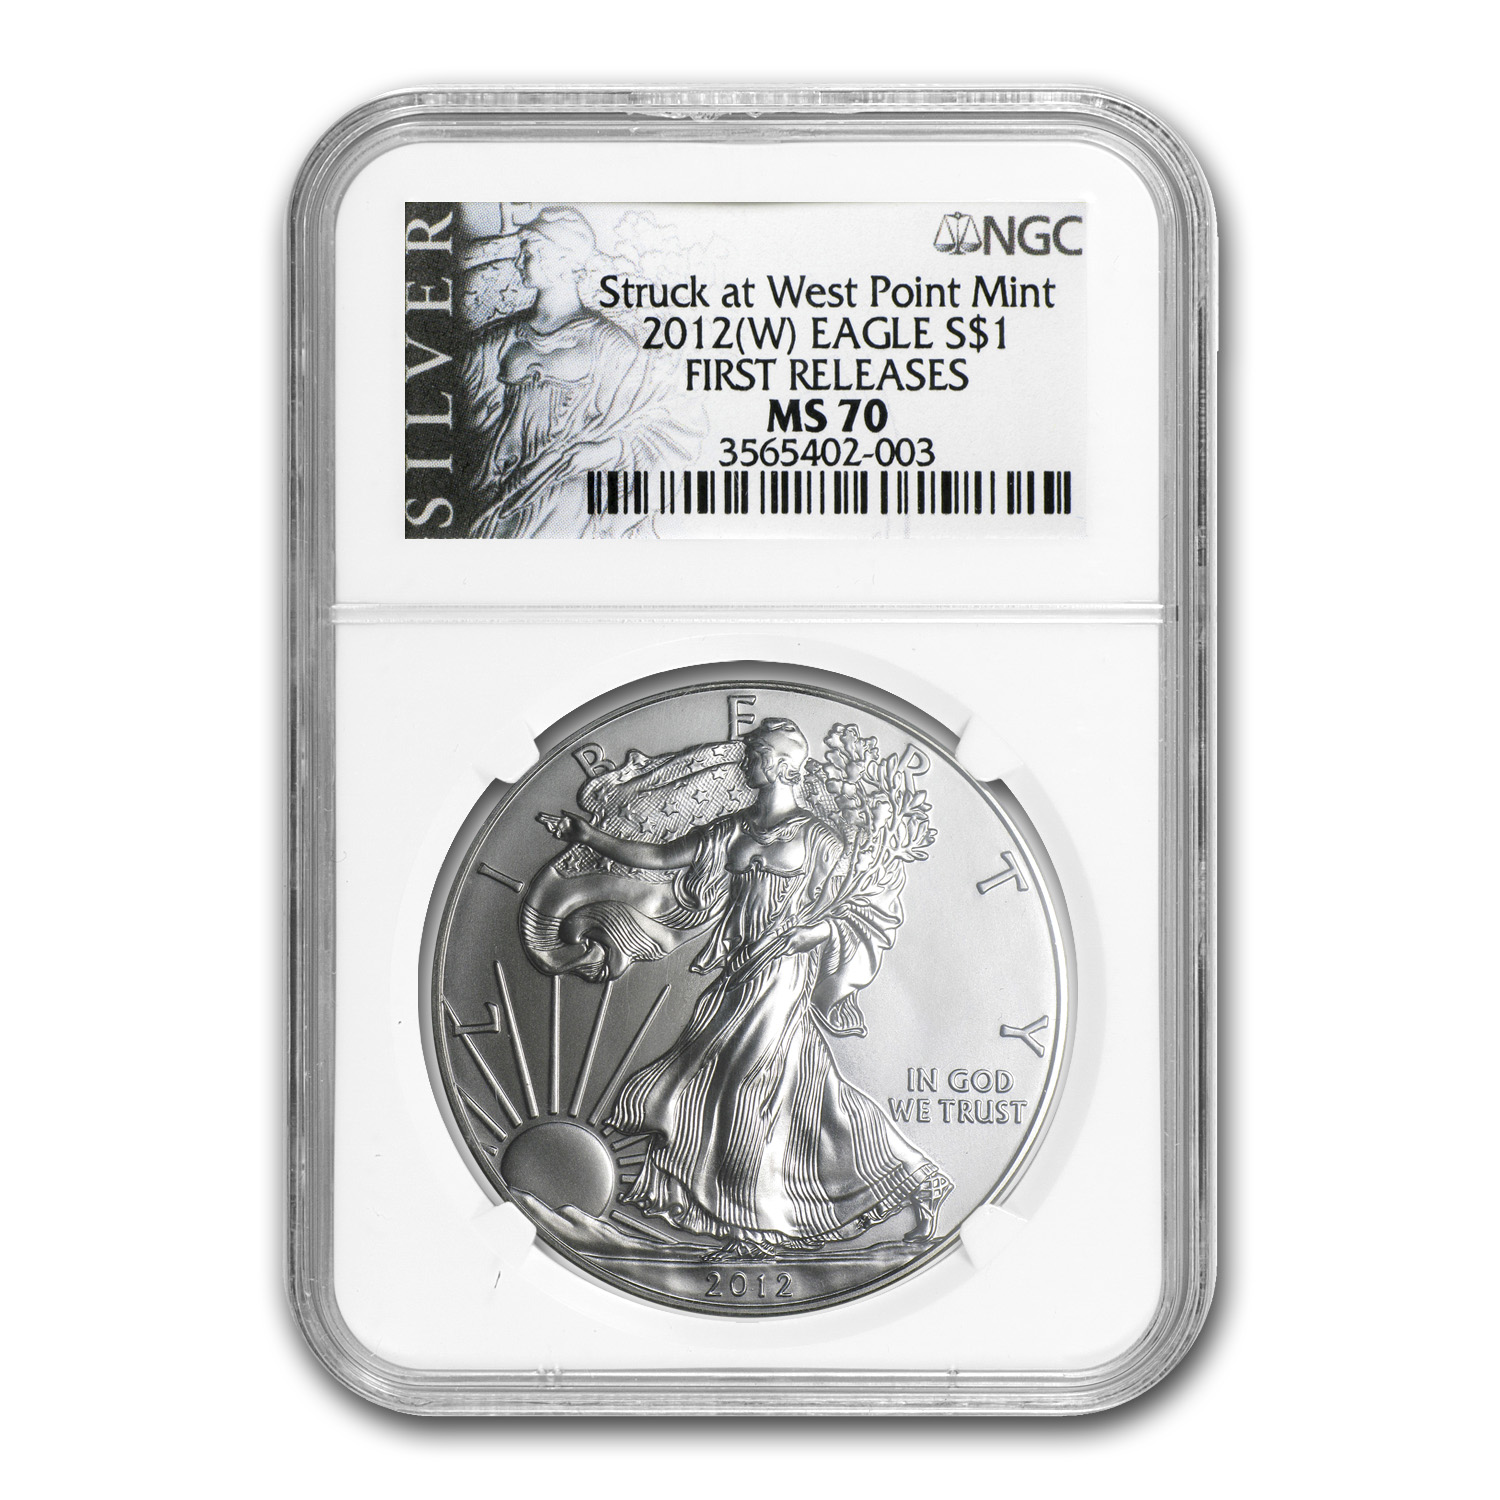 2012 (W) Silver American Eagle MS-70 NGC (ALS Label, 1st Release)